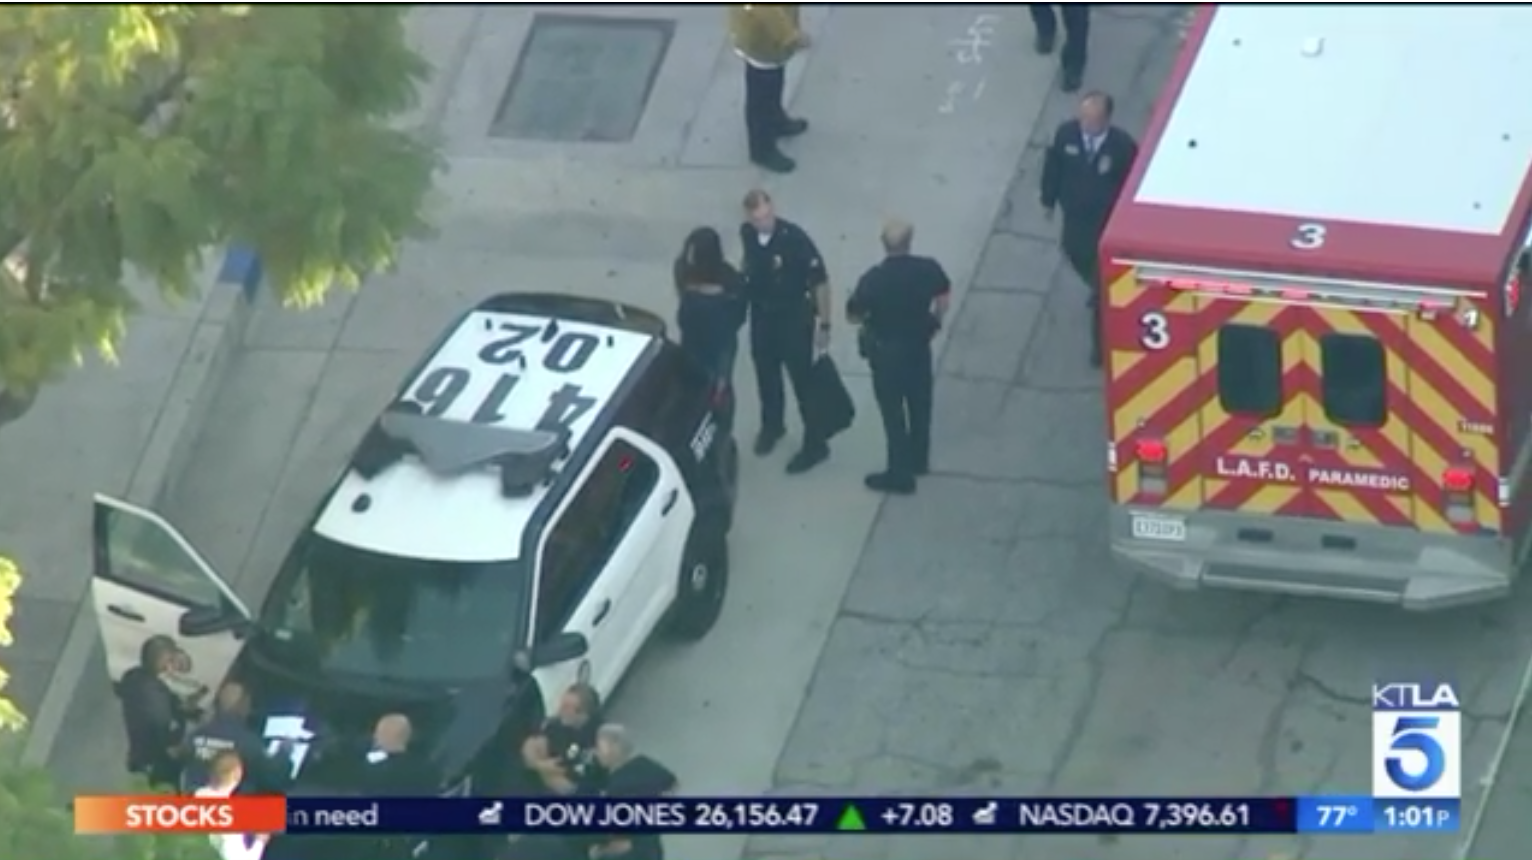 A screen grab from helicopter news footage shows officers leading a handcuffed girl with long hair to a waiting squad car after a shooting at the Salvador Castro Middle School in Los Angeles on Feb. 1, 2018.